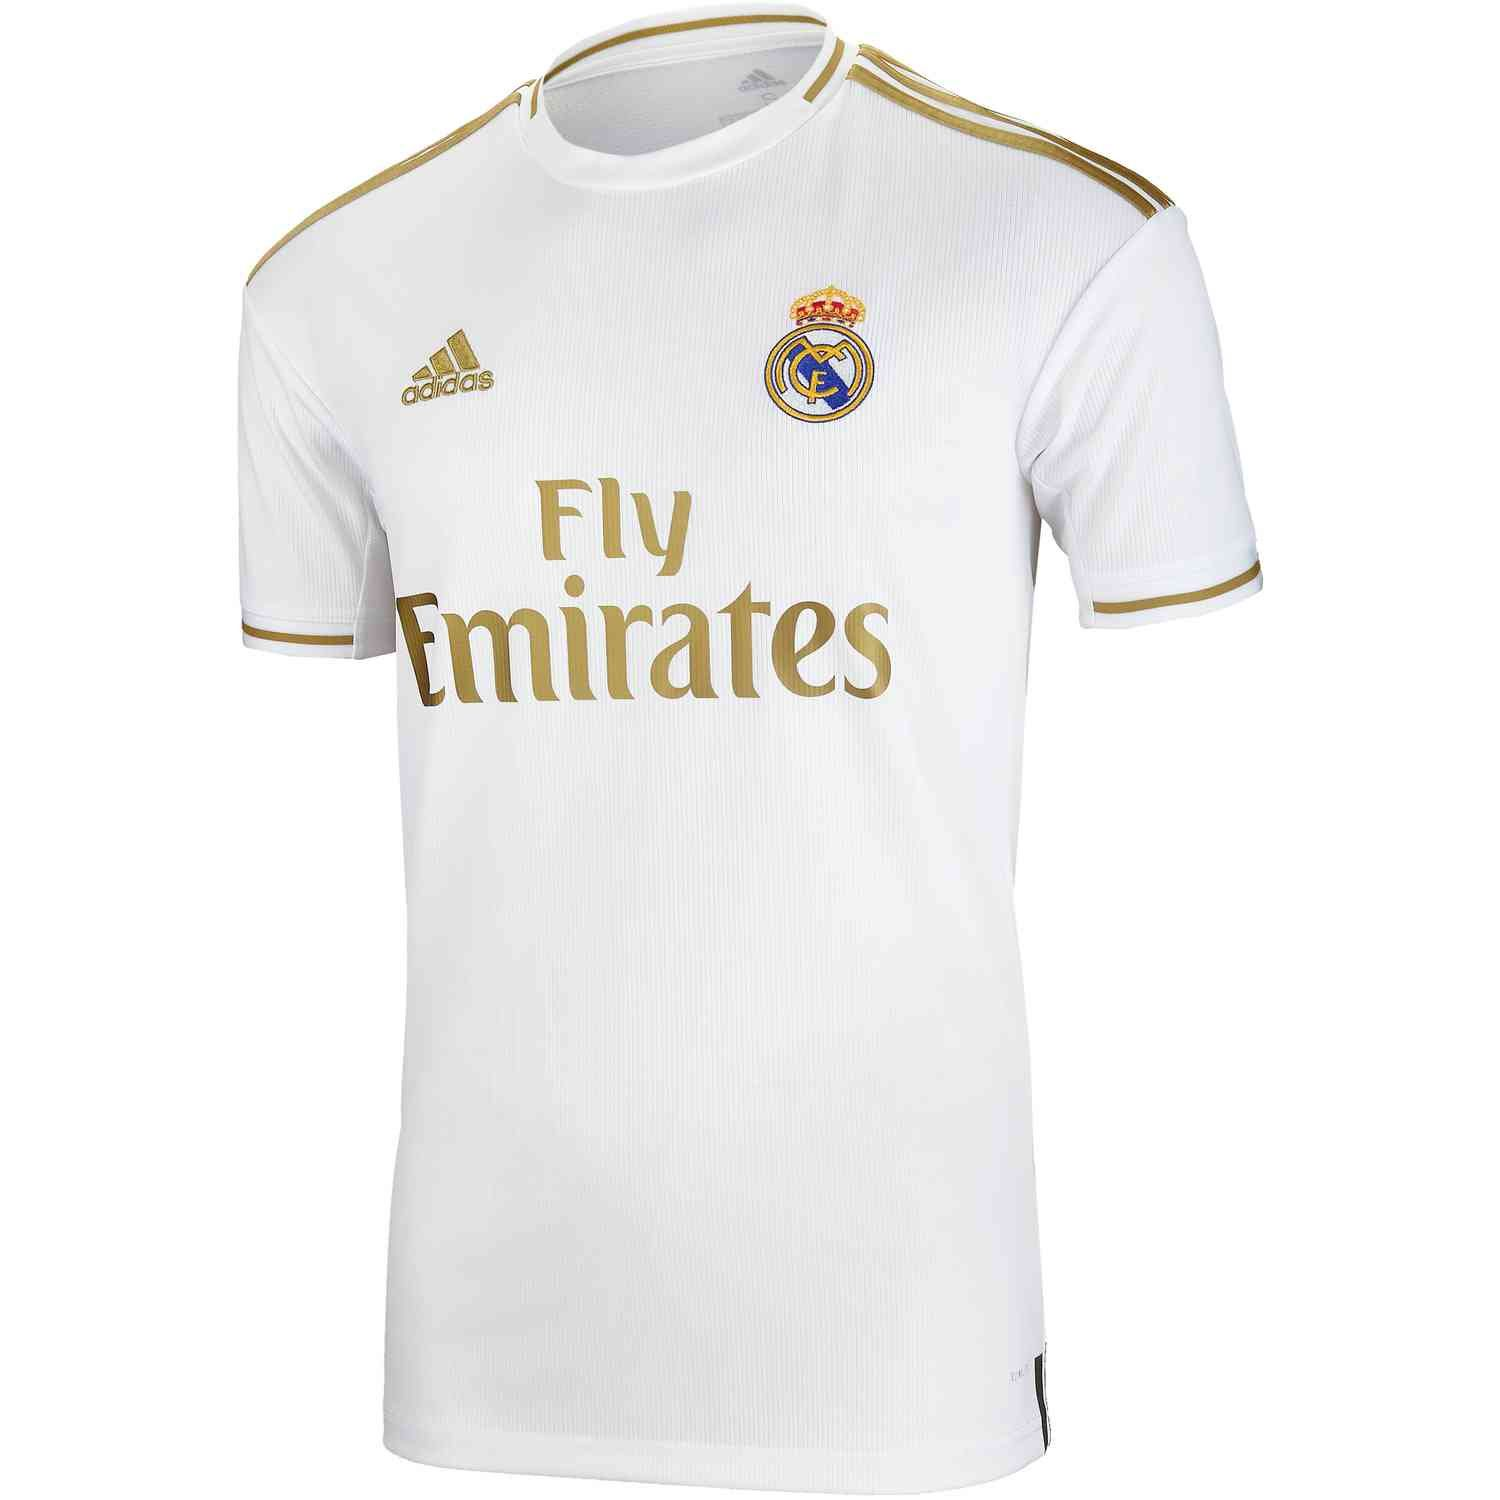 2019 20 Adidas Real Madrid Home Jersey Real Madrid Real Madrid Kit Real Madrid Manchester United